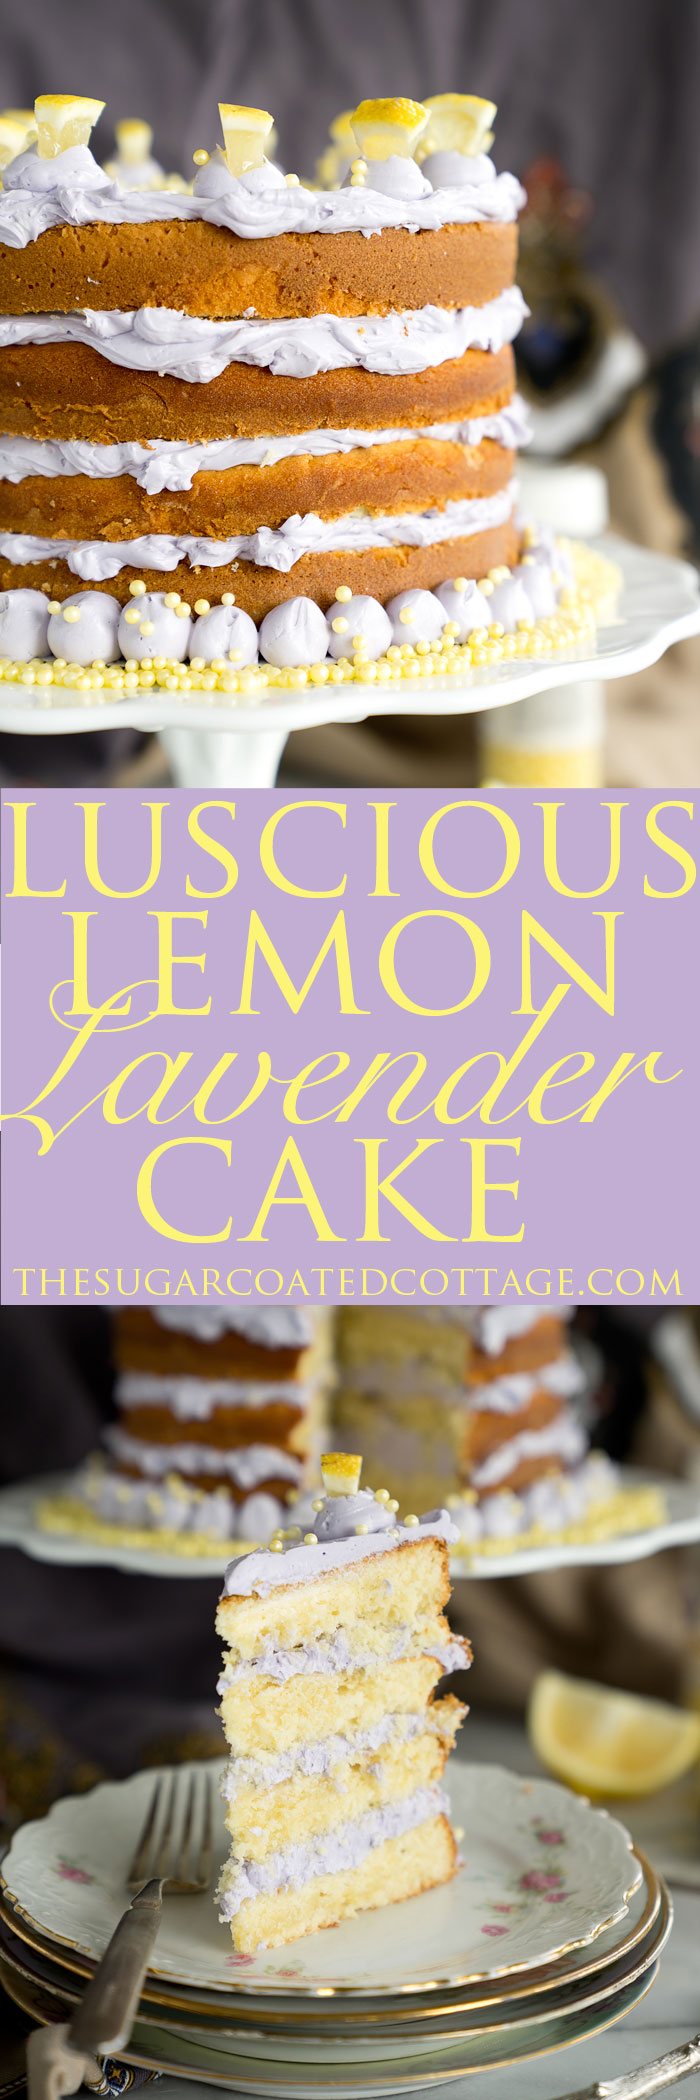 Luscious Lemon Lavender Cake Recipe. A delightful cake with a hint of lavender. | thesugarcoatedcottage.com